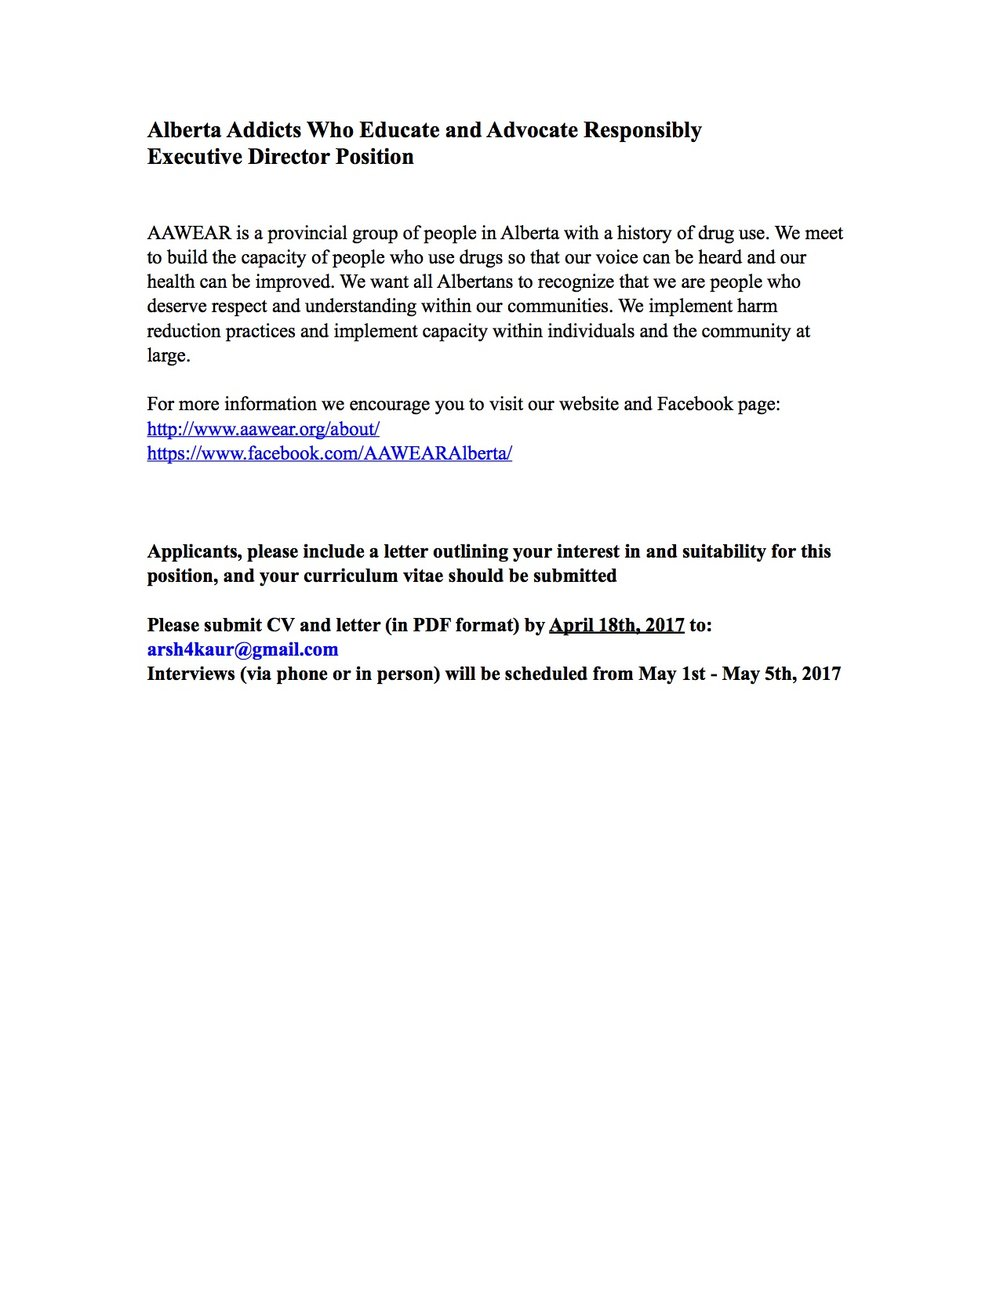 Executive Director Job Posting U2014 AAWEAR